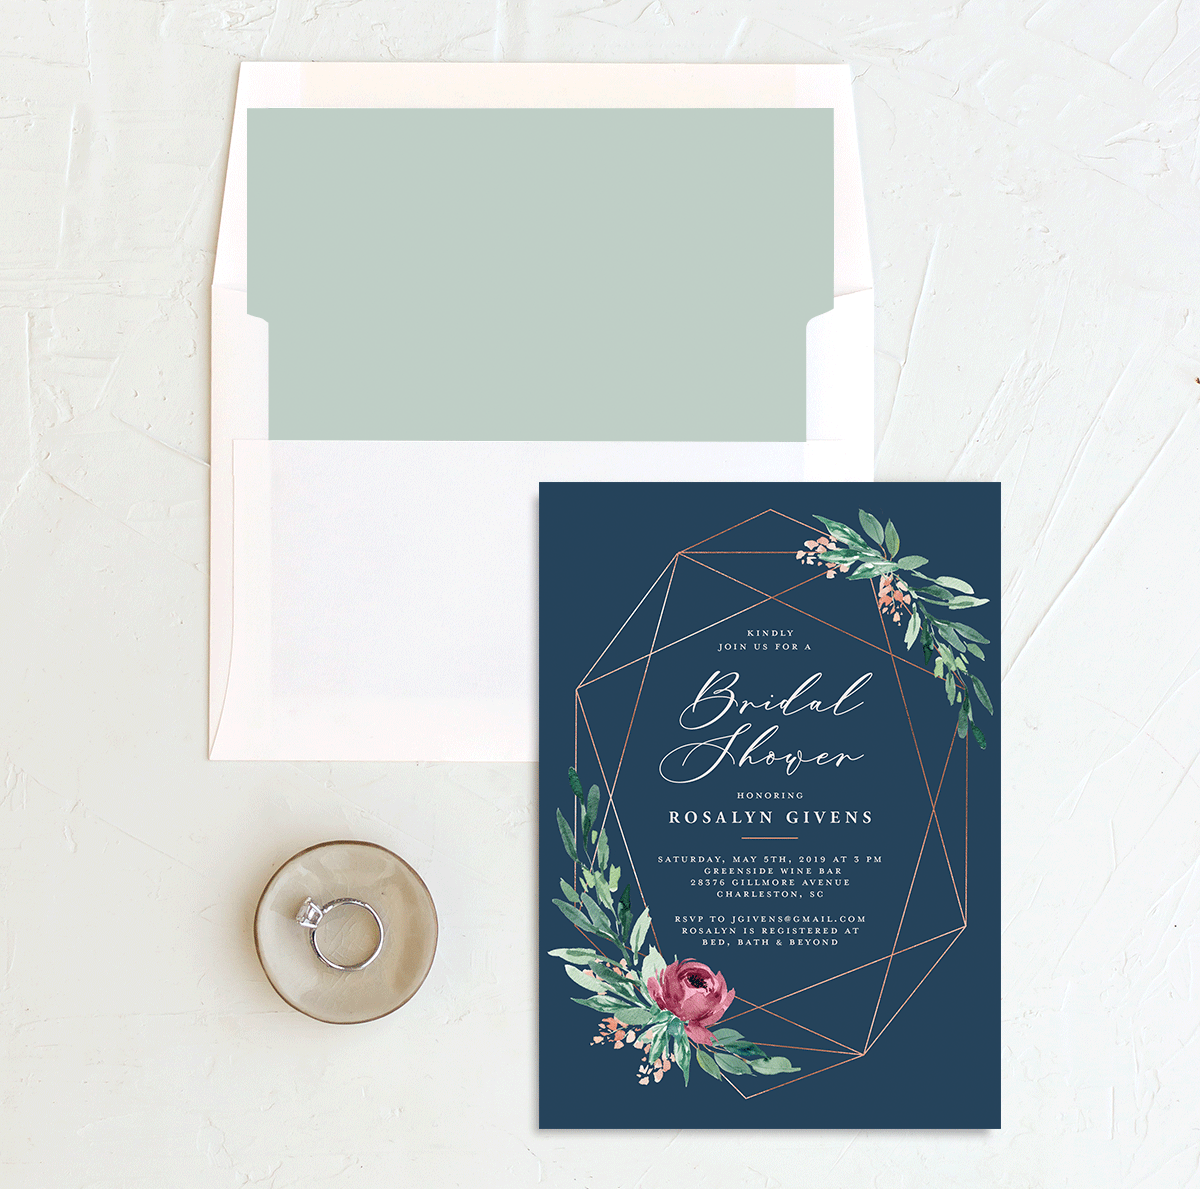 Gilded Botanical bridal shower invitation with liner